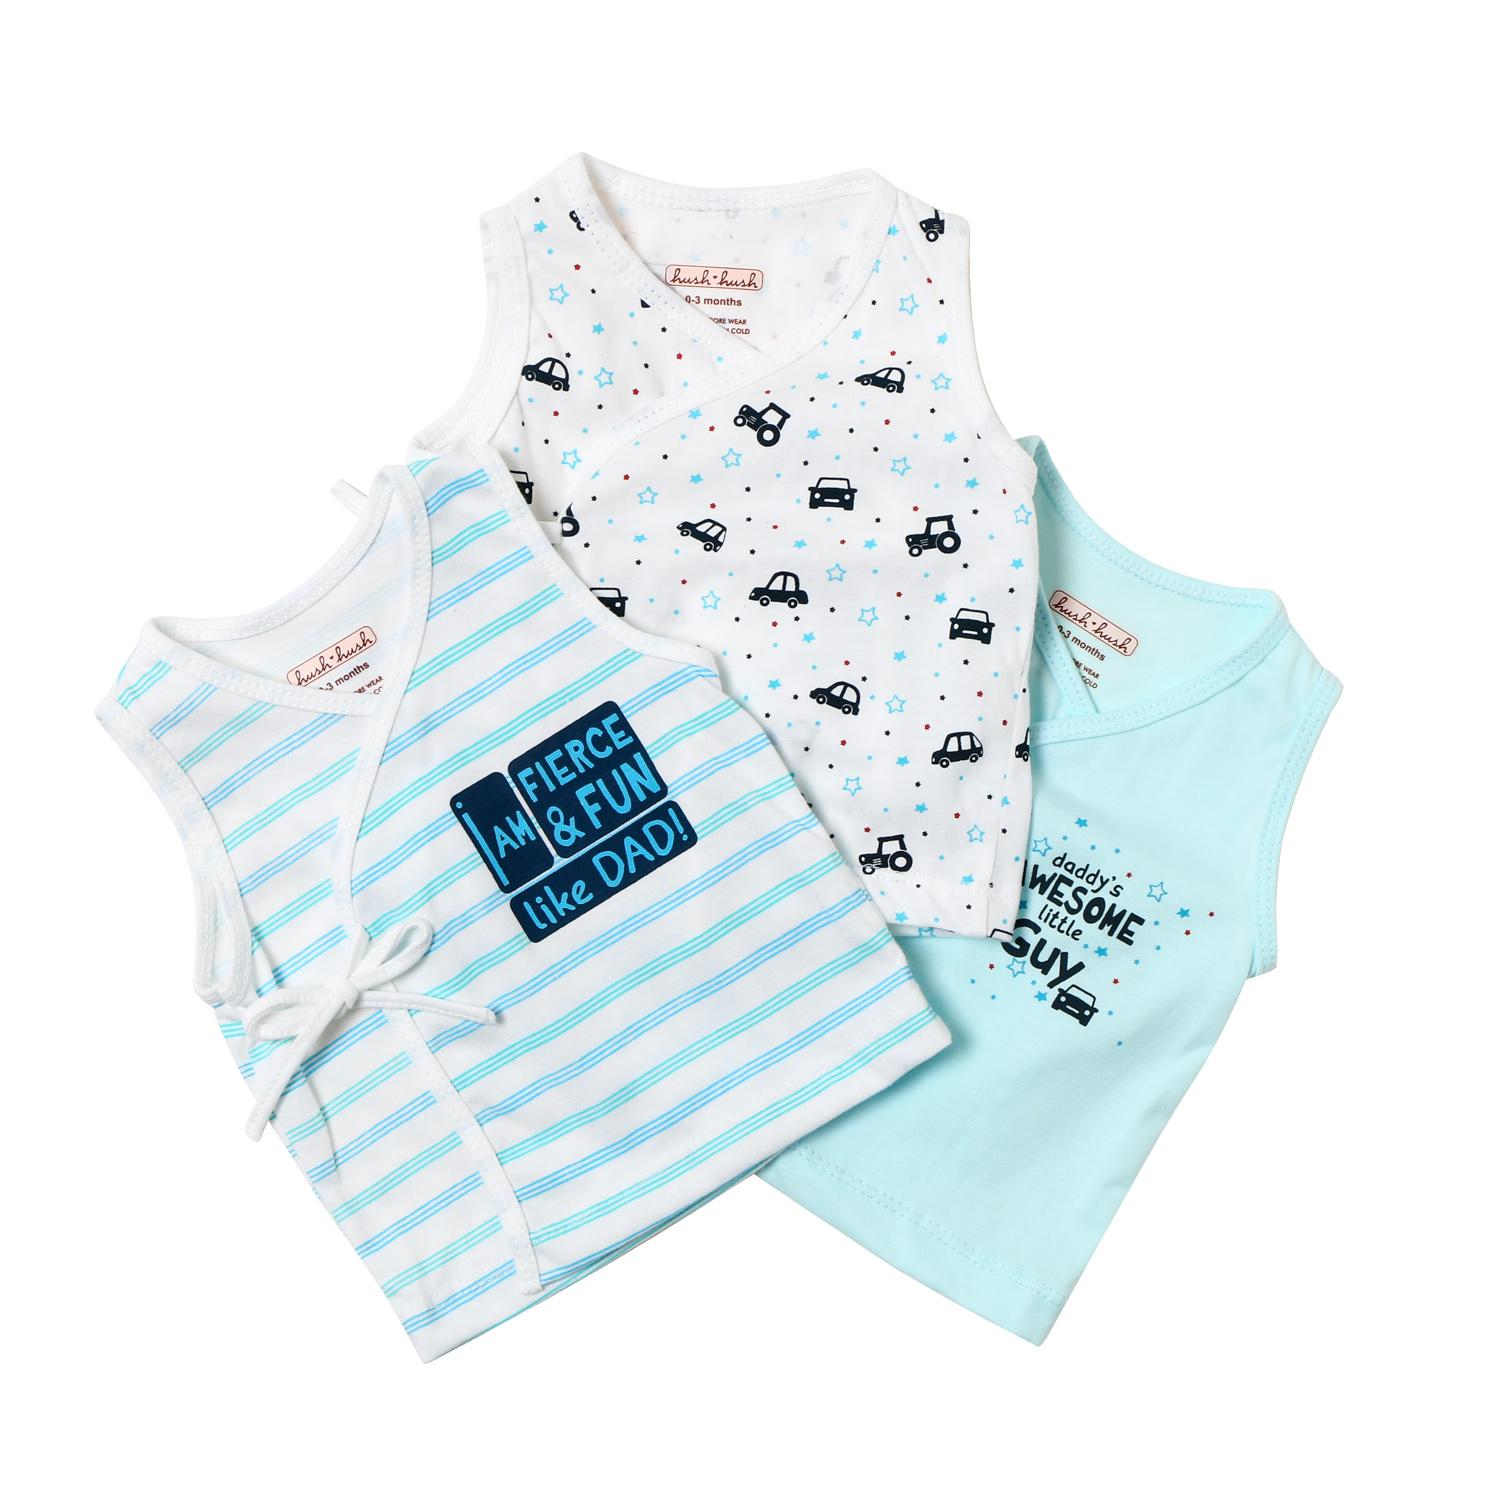 7718ccdd938d7 Hush Hush Baby Boys 3-piece Awesome Little Guy Tie-side Top Set